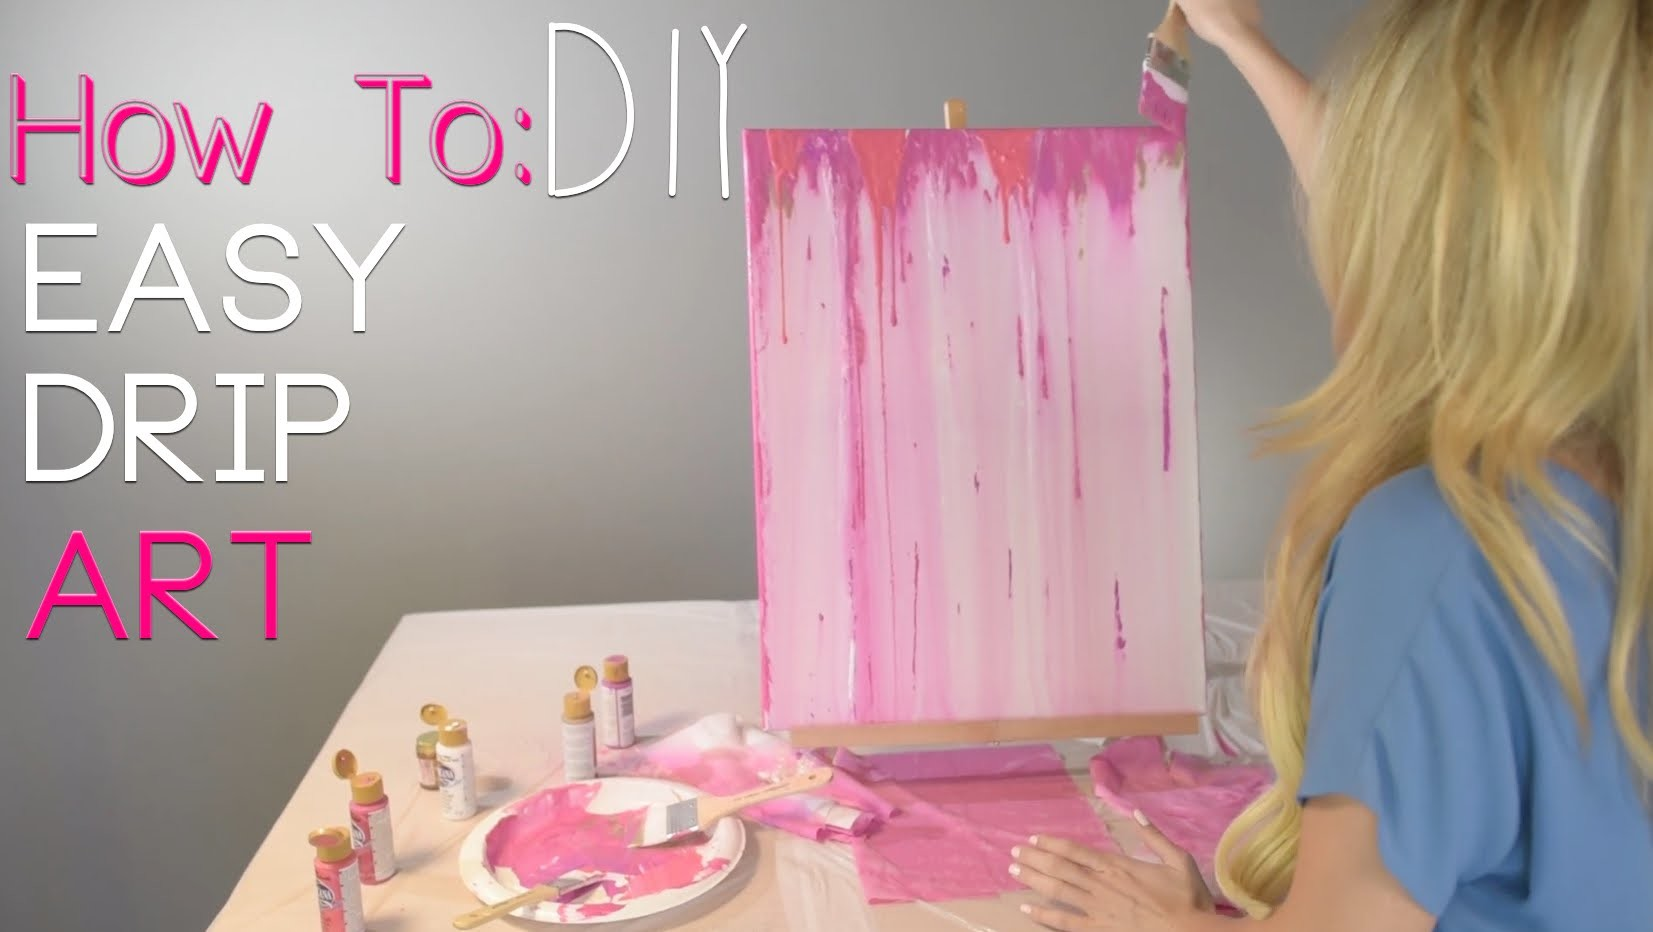 HOW TO: Acrylic Drip Painting DIY